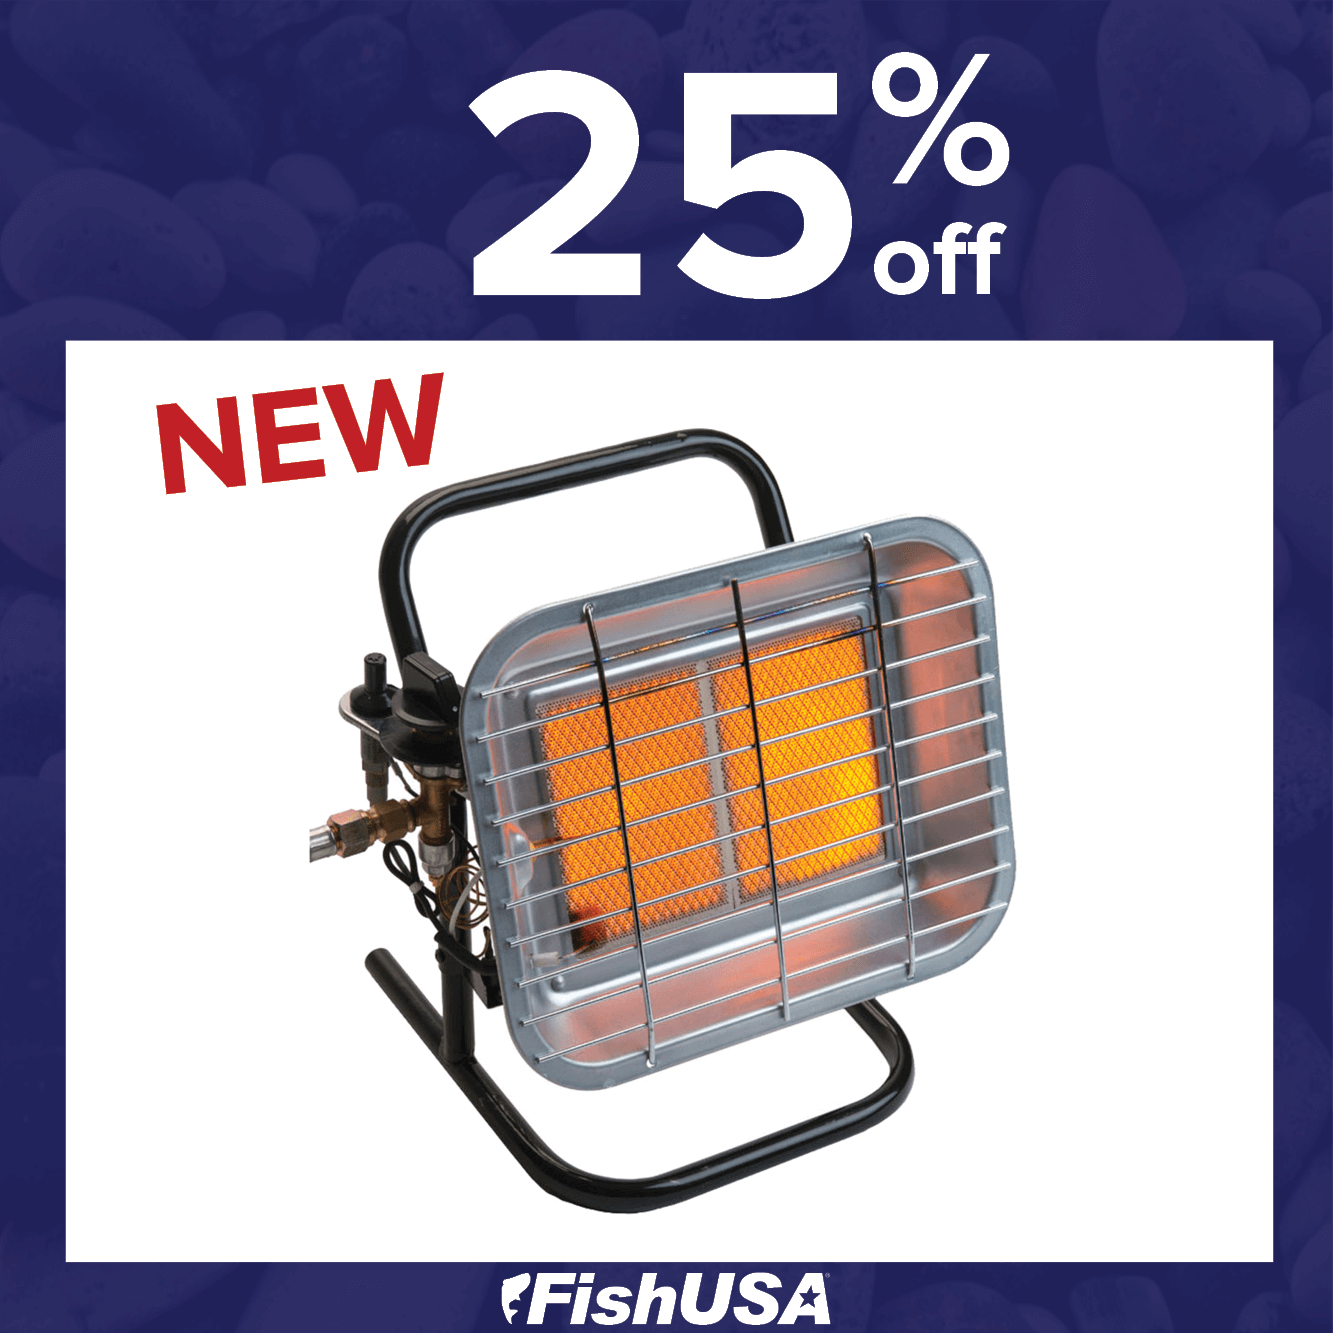 Take 25% off the NEW Thermablaster 15000 BTU Infrared Portable Propane Heater